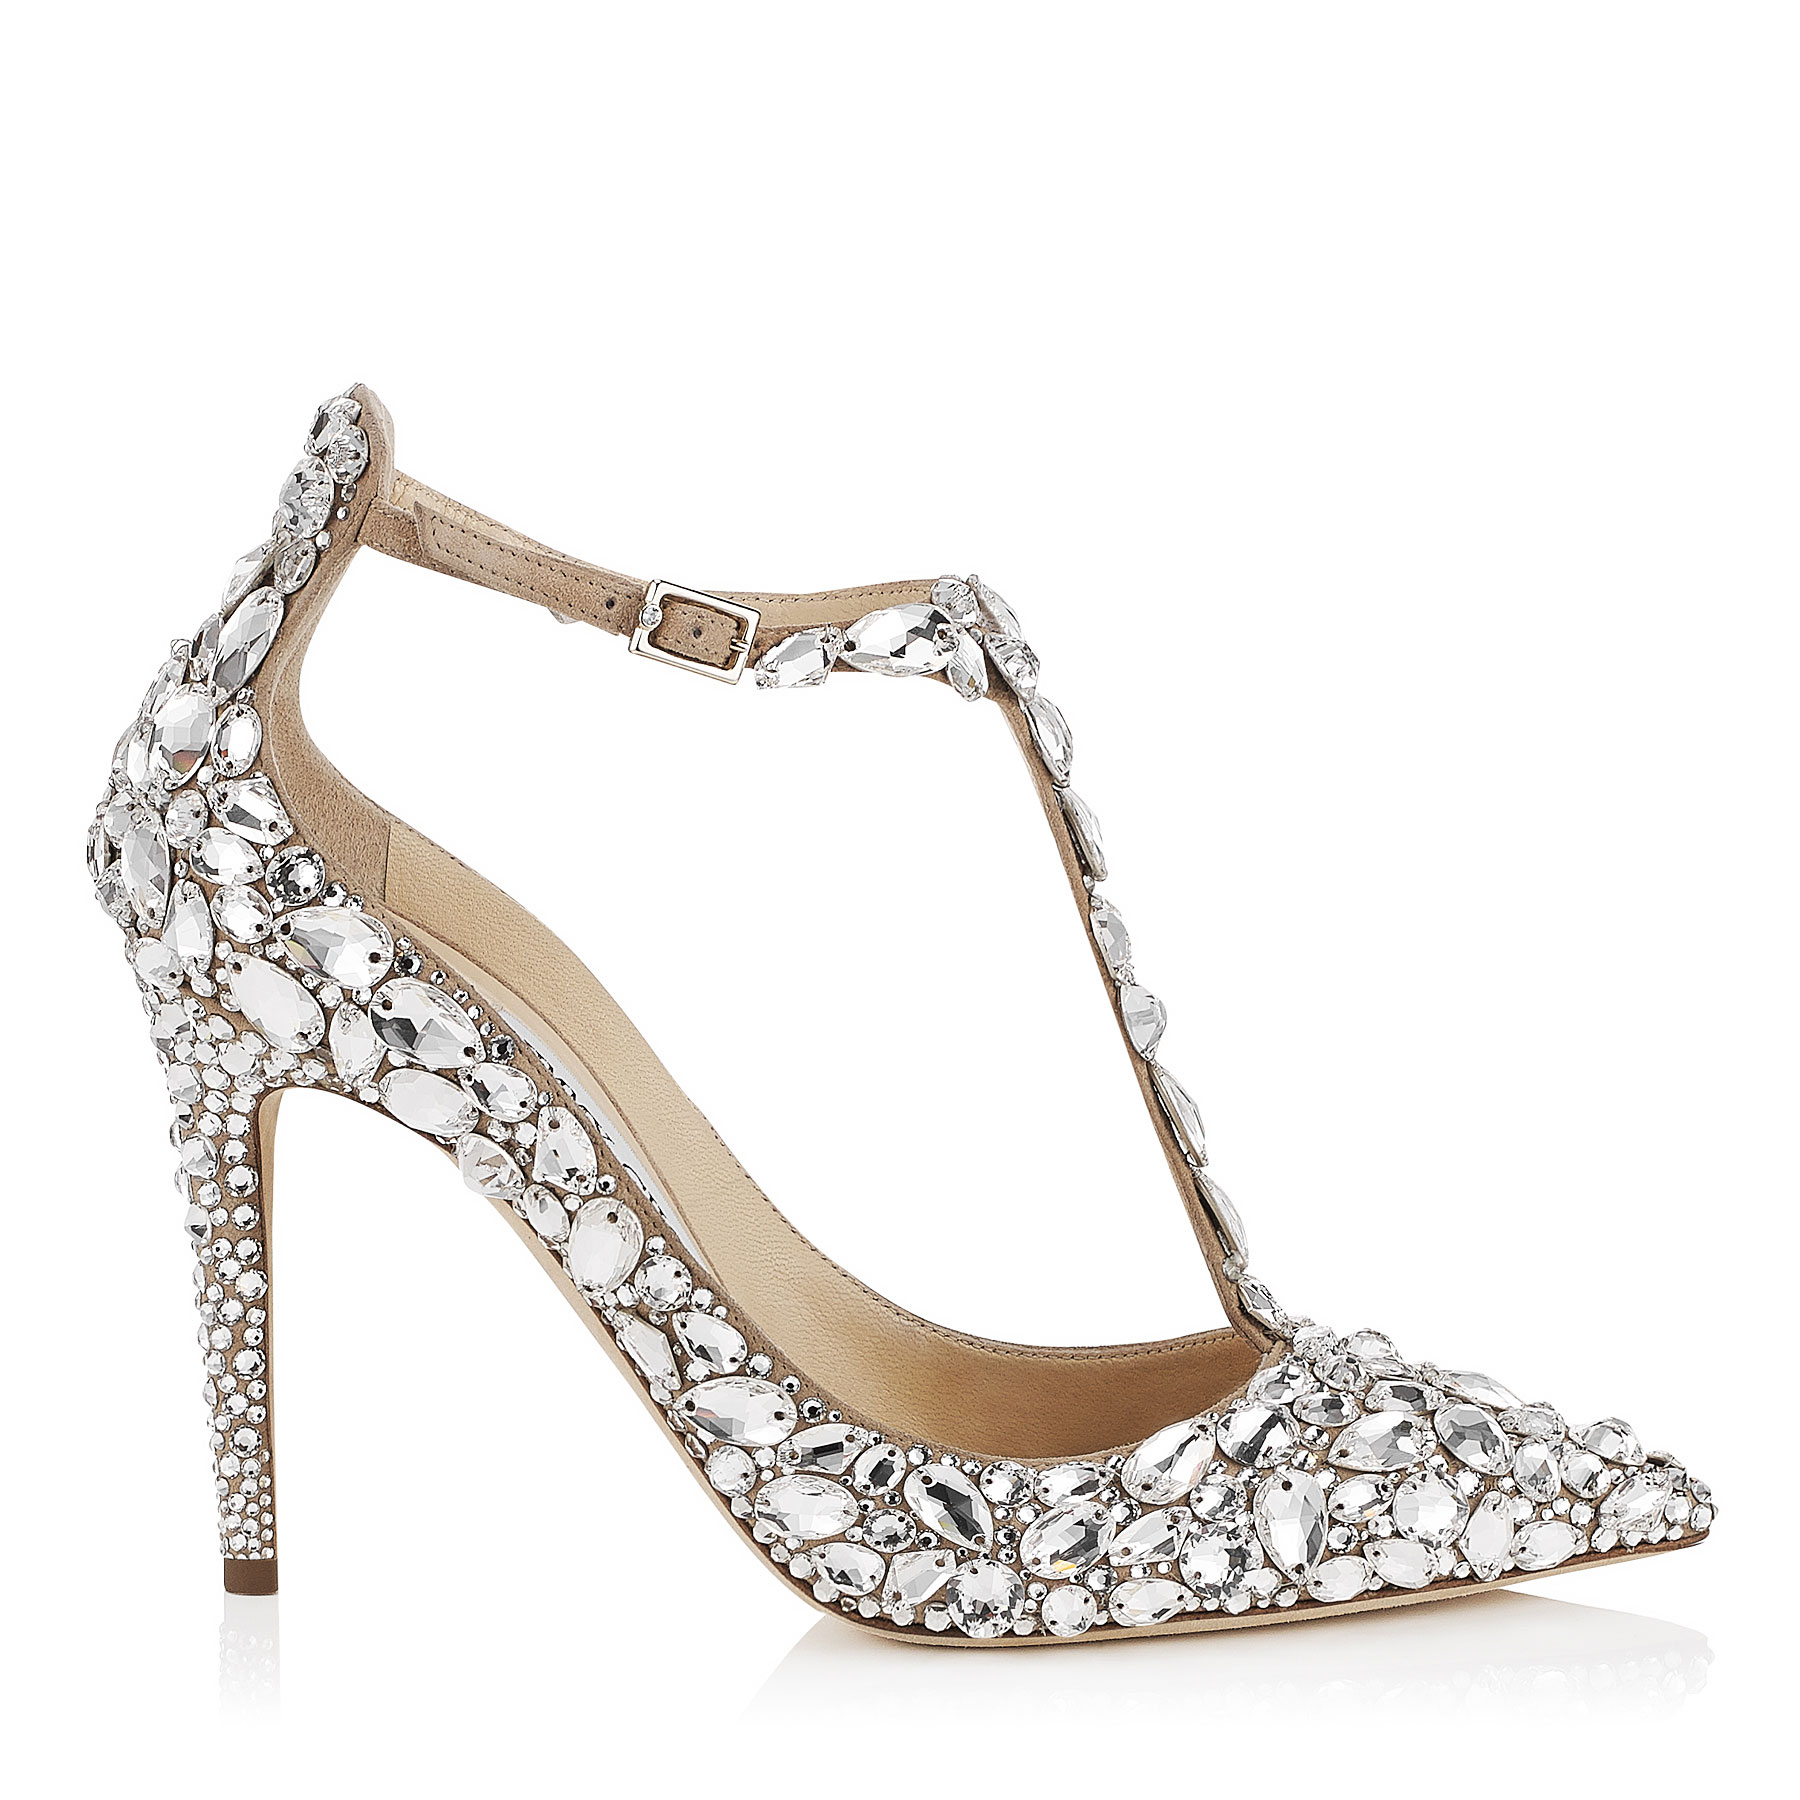 STORM 85 Nude Suede, Crystal Covered Pointy Toe Pumps